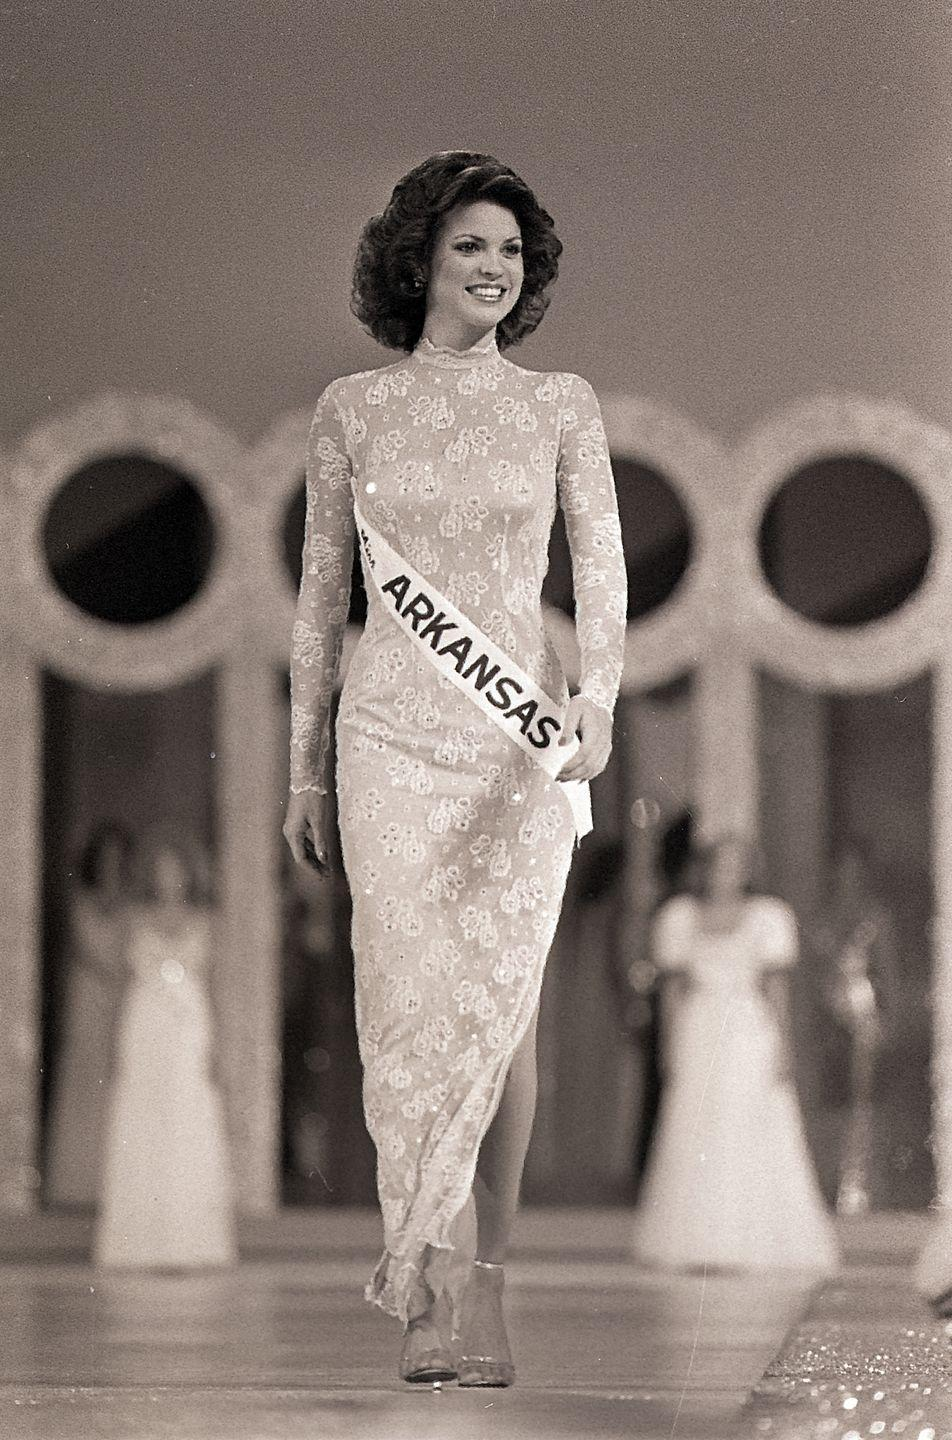 <p>With a form-fitting dress and coiffed '80s hair, Miss Arkansas, Elizabeth Ward, took home the 1982 title for Miss America. Her dress, which leaned on the subtle side, was a departure from the glitz and glam of previous winners.</p>